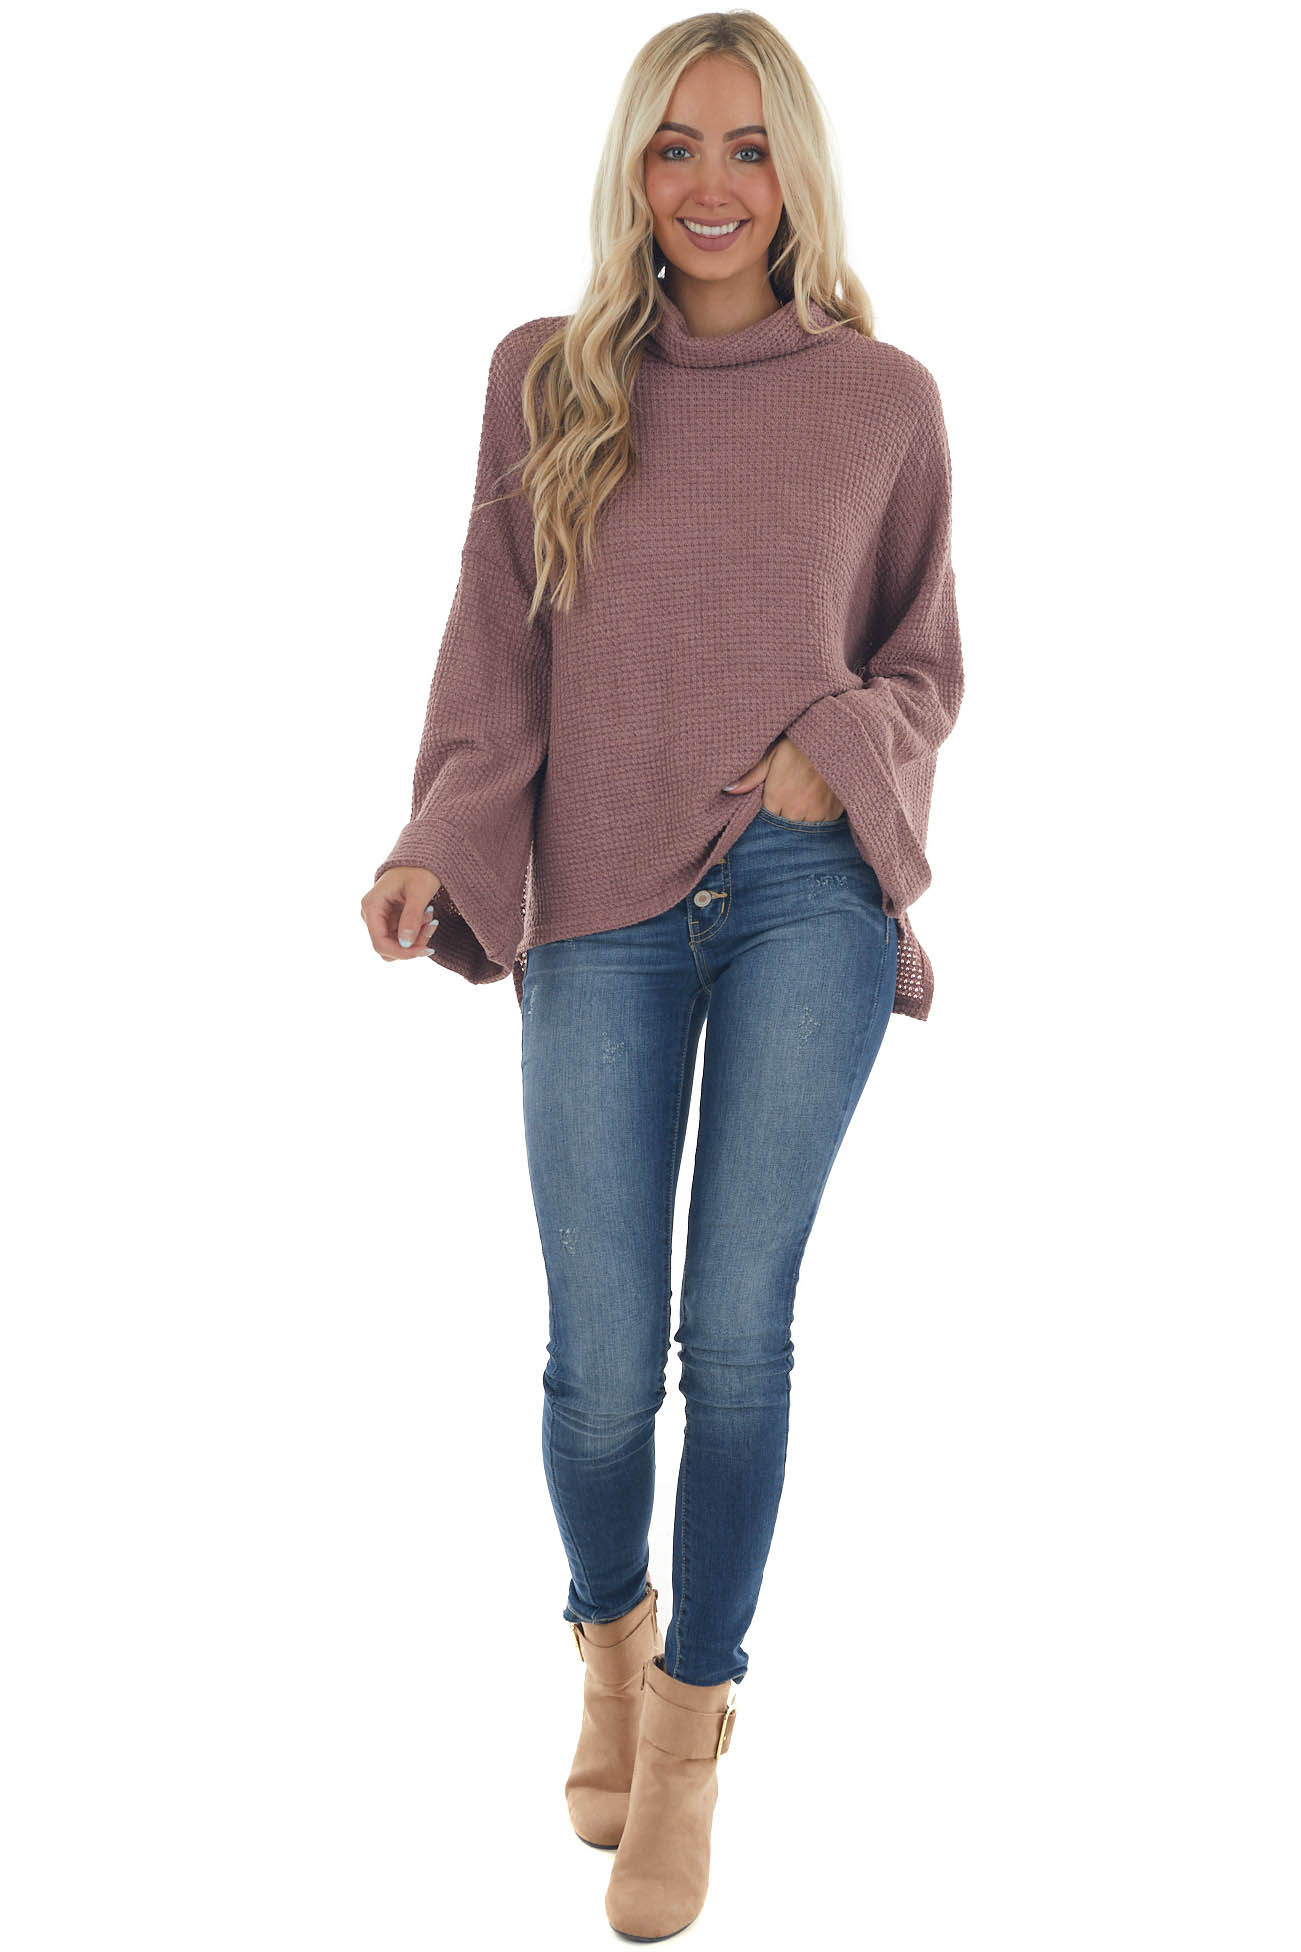 Dusty Rose Cowl Neck Waffle Knit Top